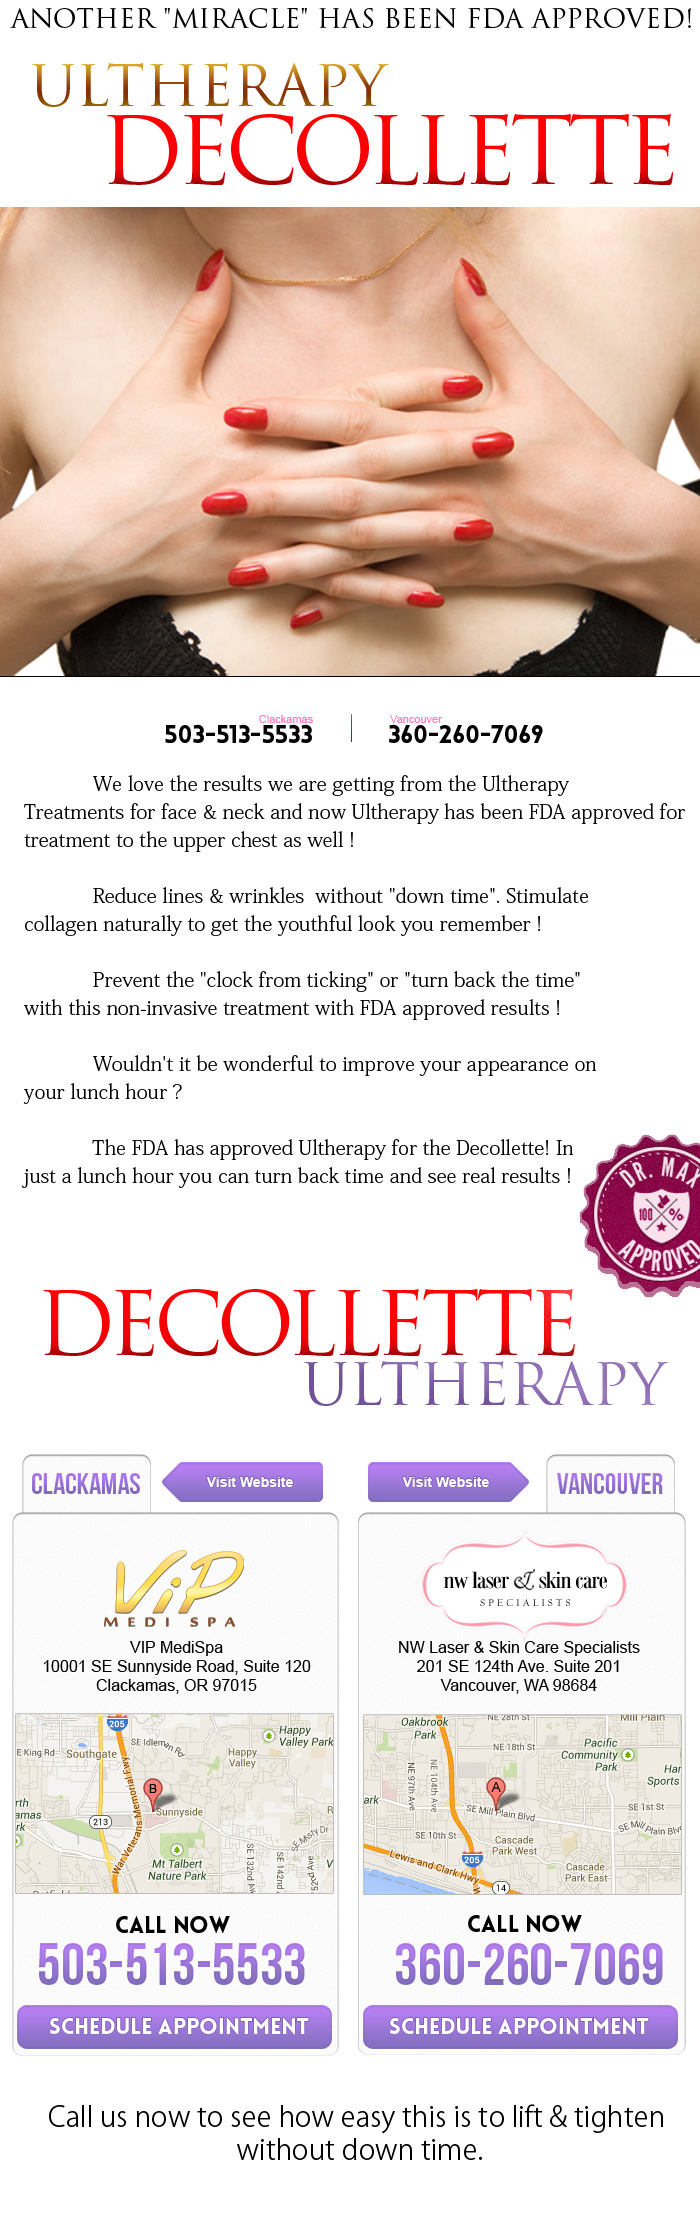 "Ultherapy info for the Decollette - Another ""Miracle"" has been FDA Approved!"